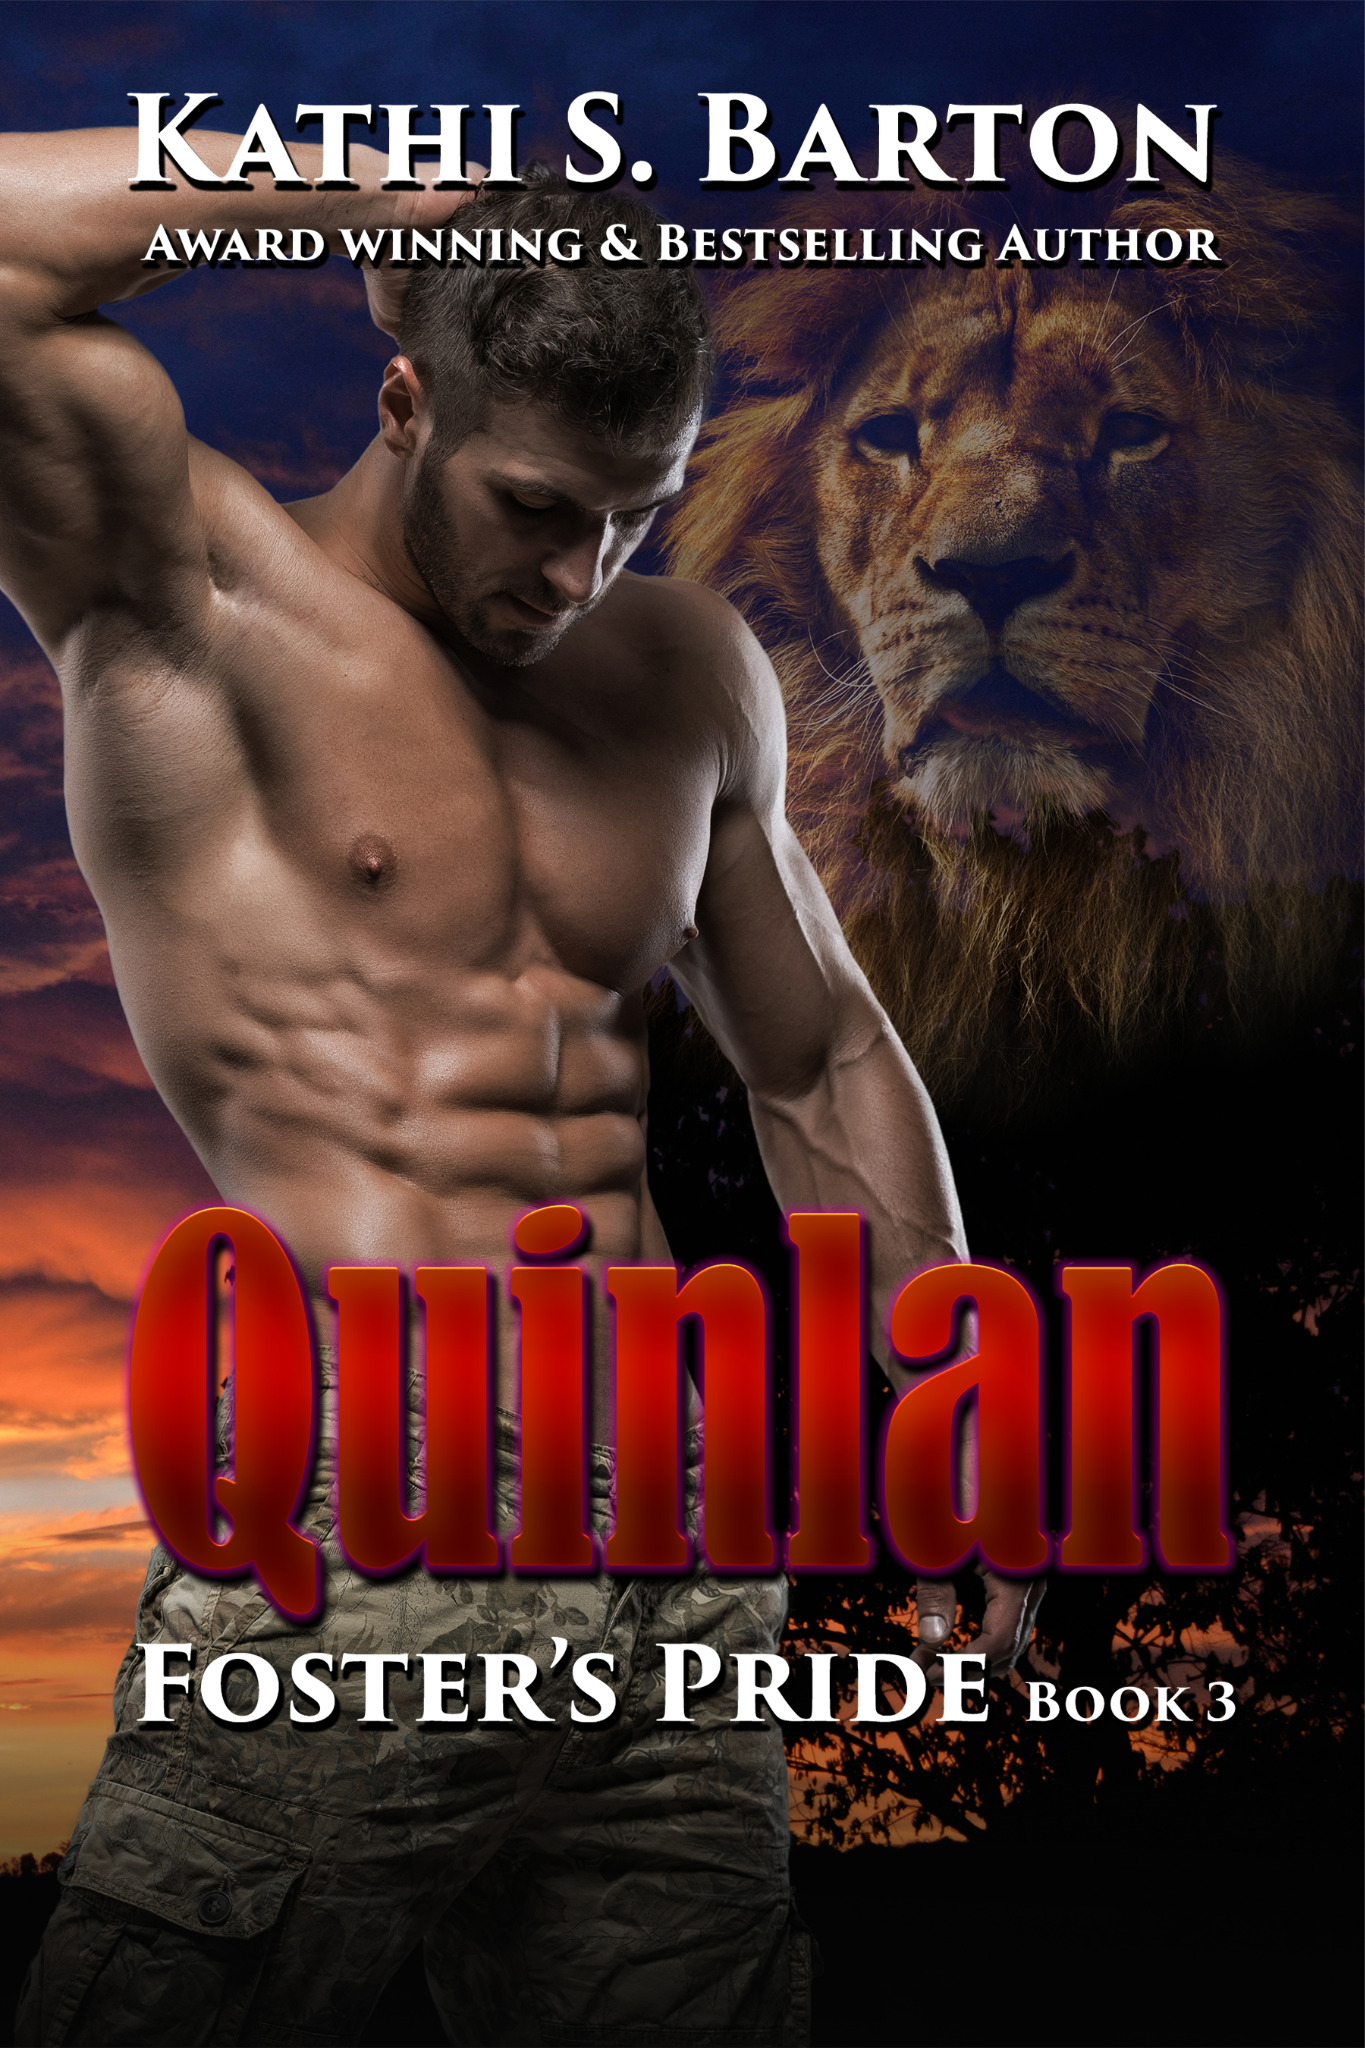 Quinlan - Foster's Pride Book 3